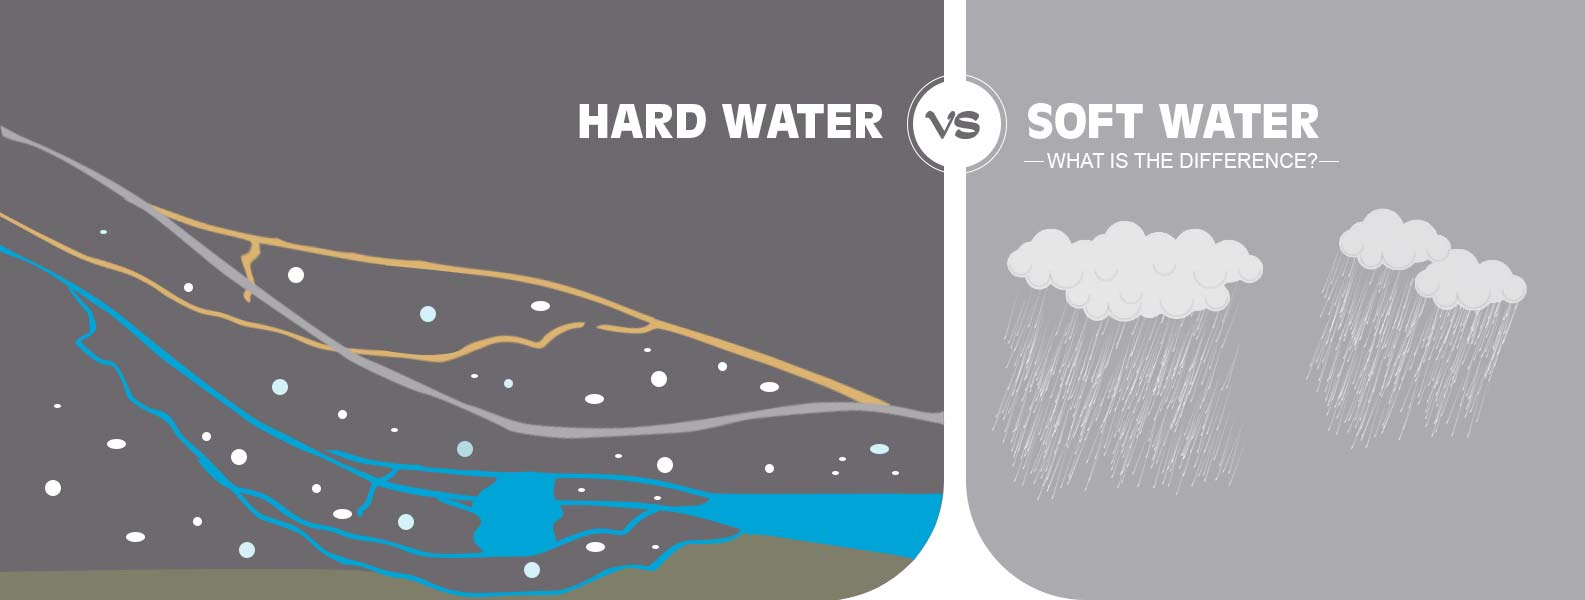 Hard Water vs Soft Water? What is the Difference?